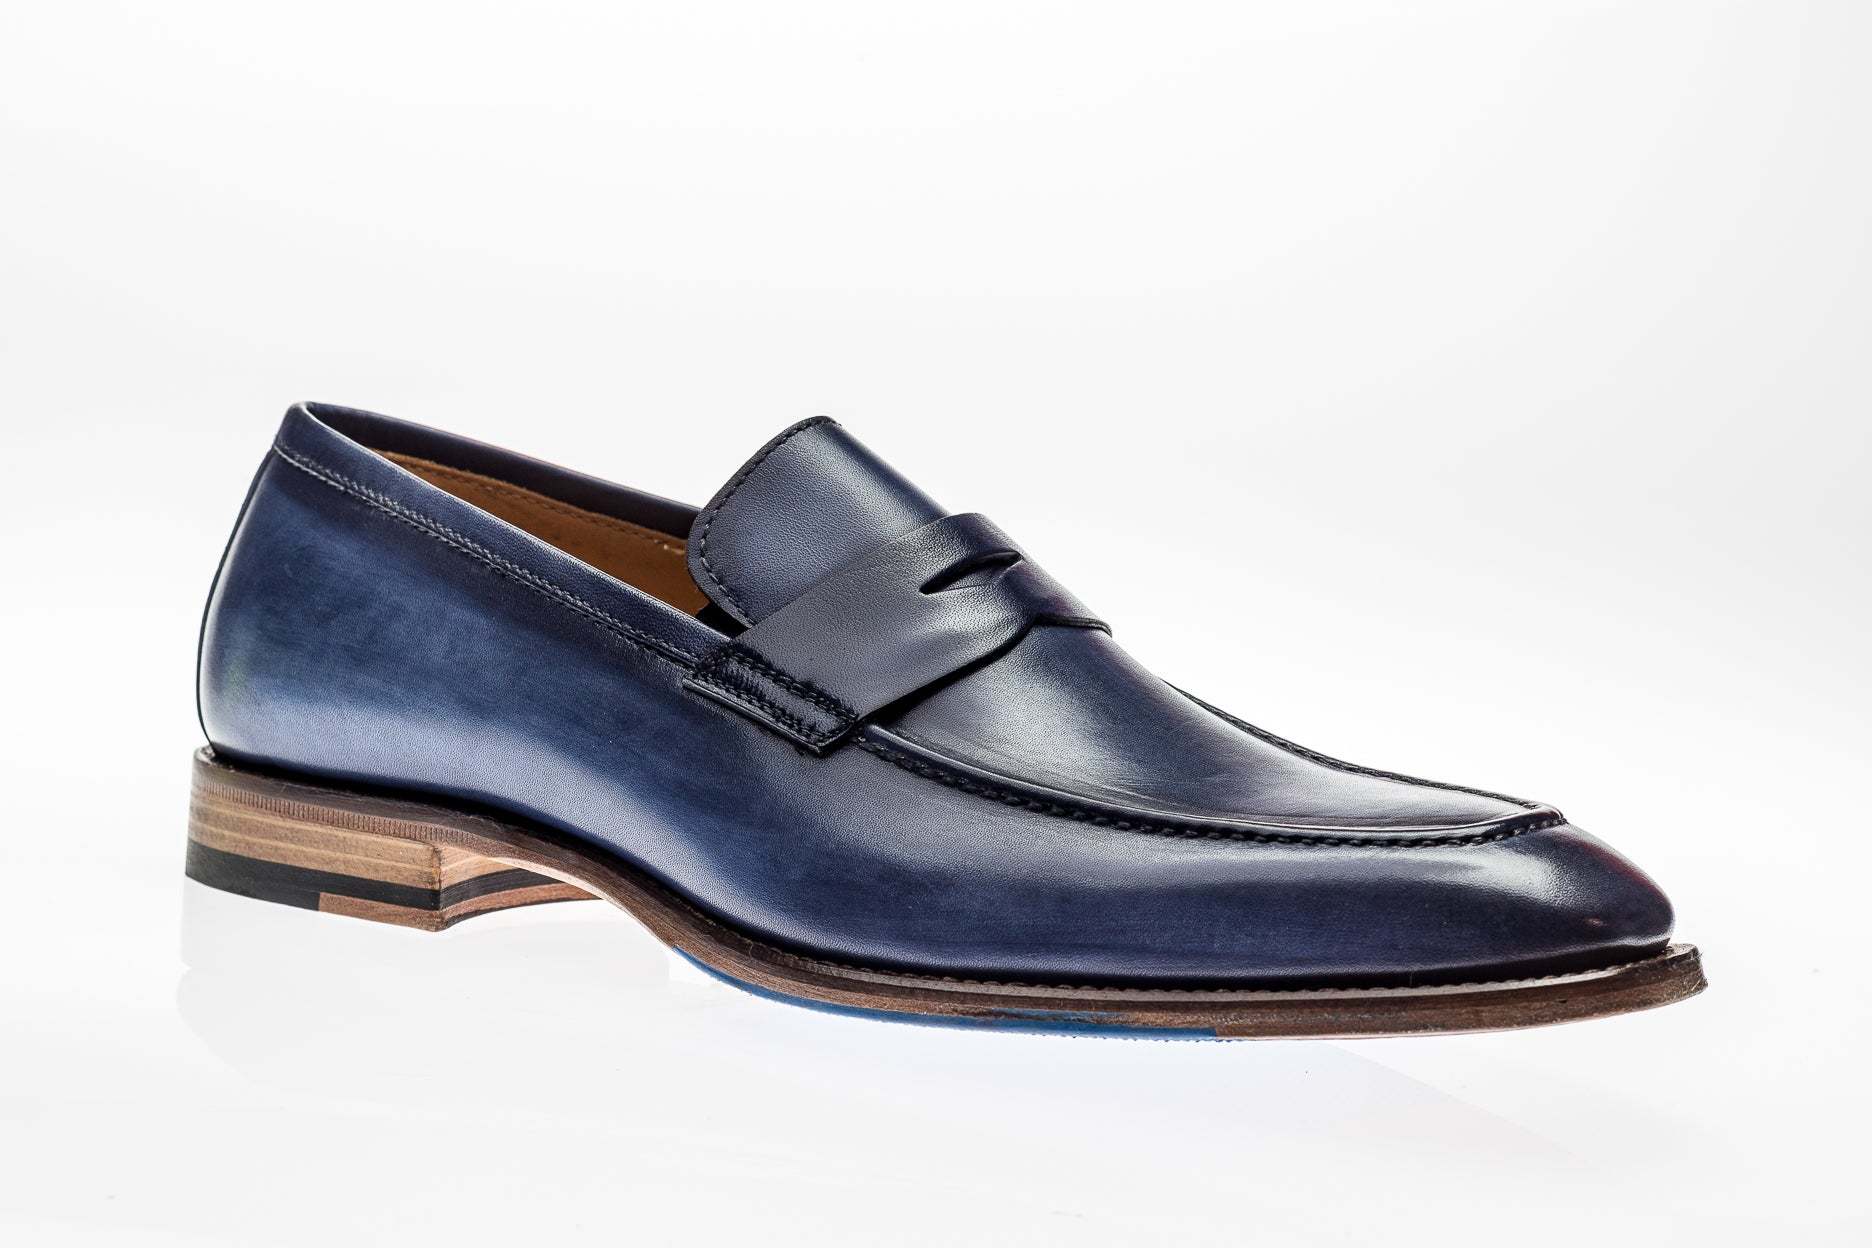 AMBERES LOAFER DEEP BLUE,SHOES,Jose Real, | GentRow.com